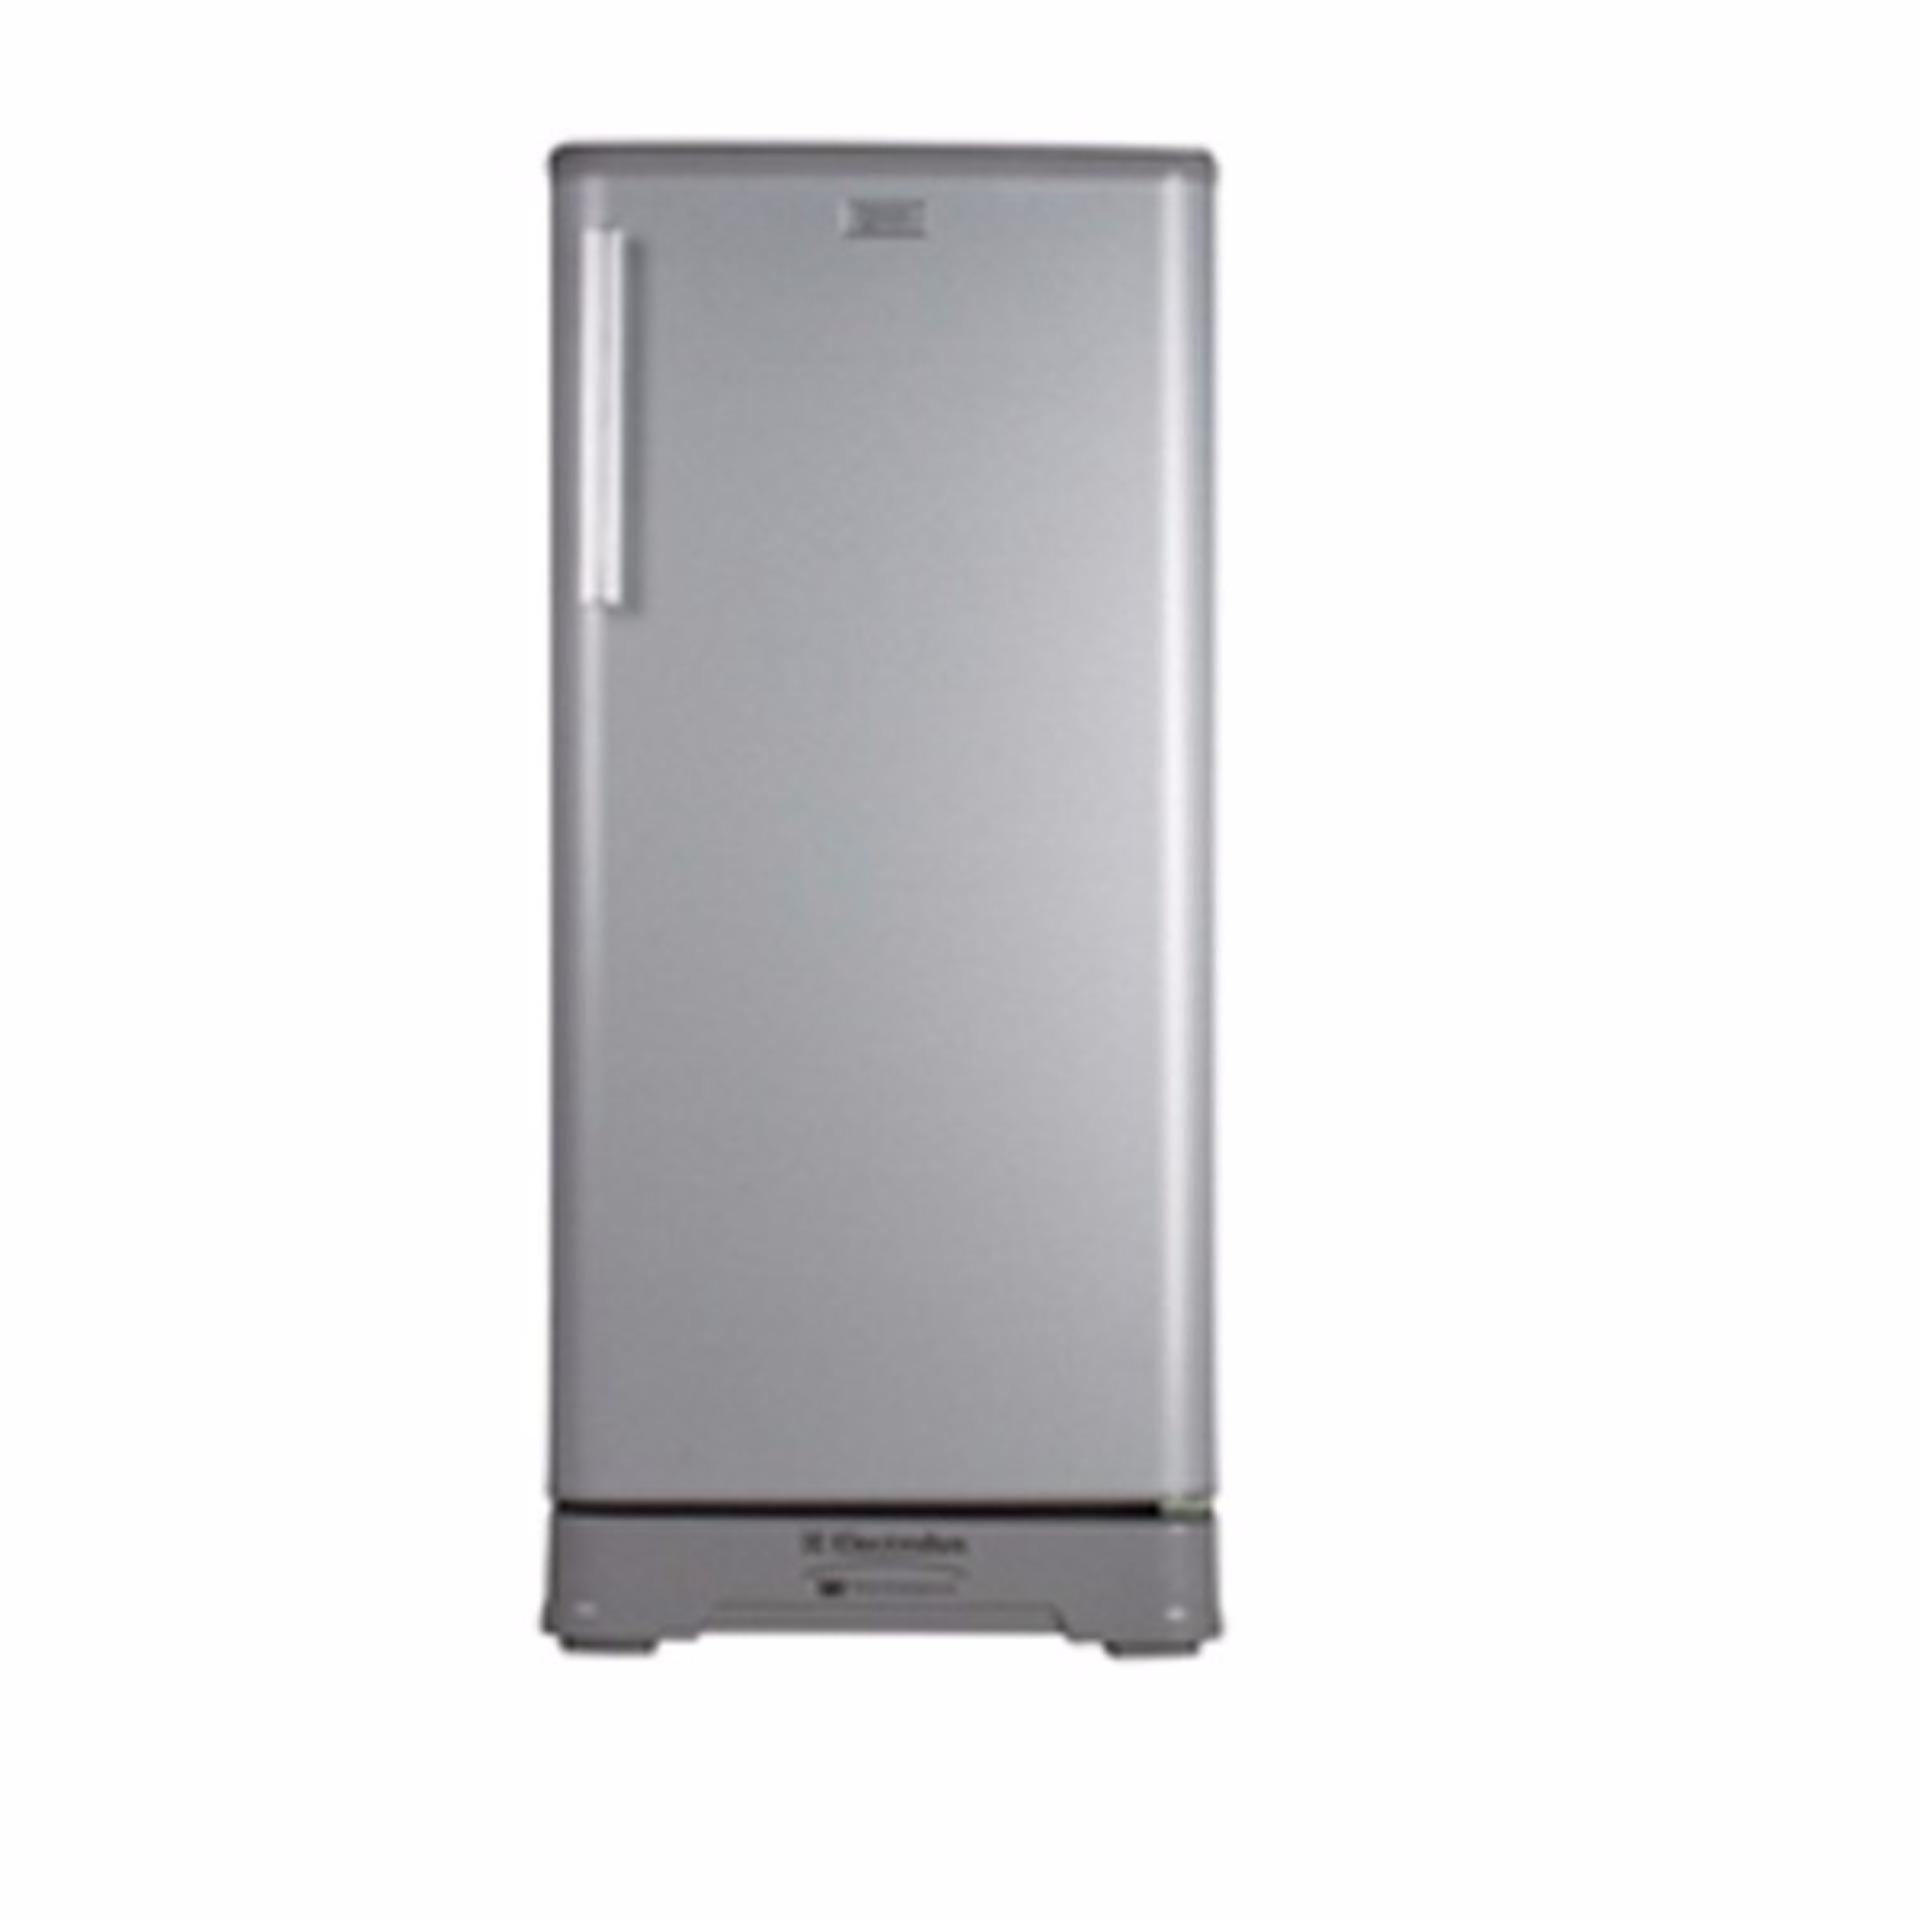 Electrolux Philippines - Electrolux Appliances for sale - prices ...